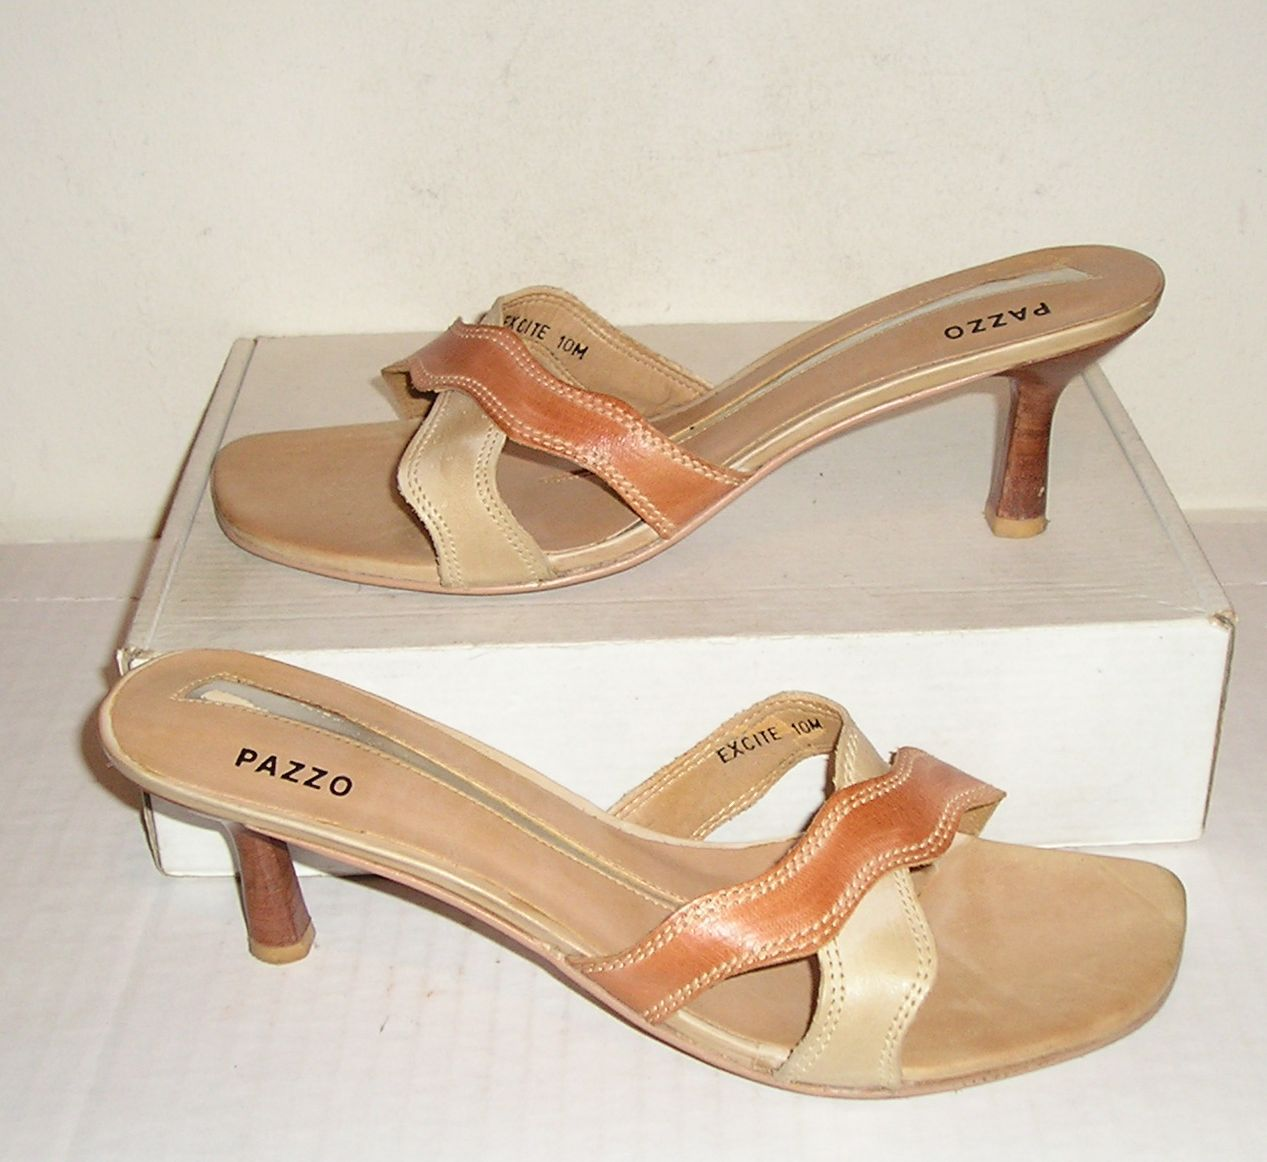 PAZZO EXCITE Women's Smooth Brown/Beige Leather Dress Sandals Slides Shoes 10 M